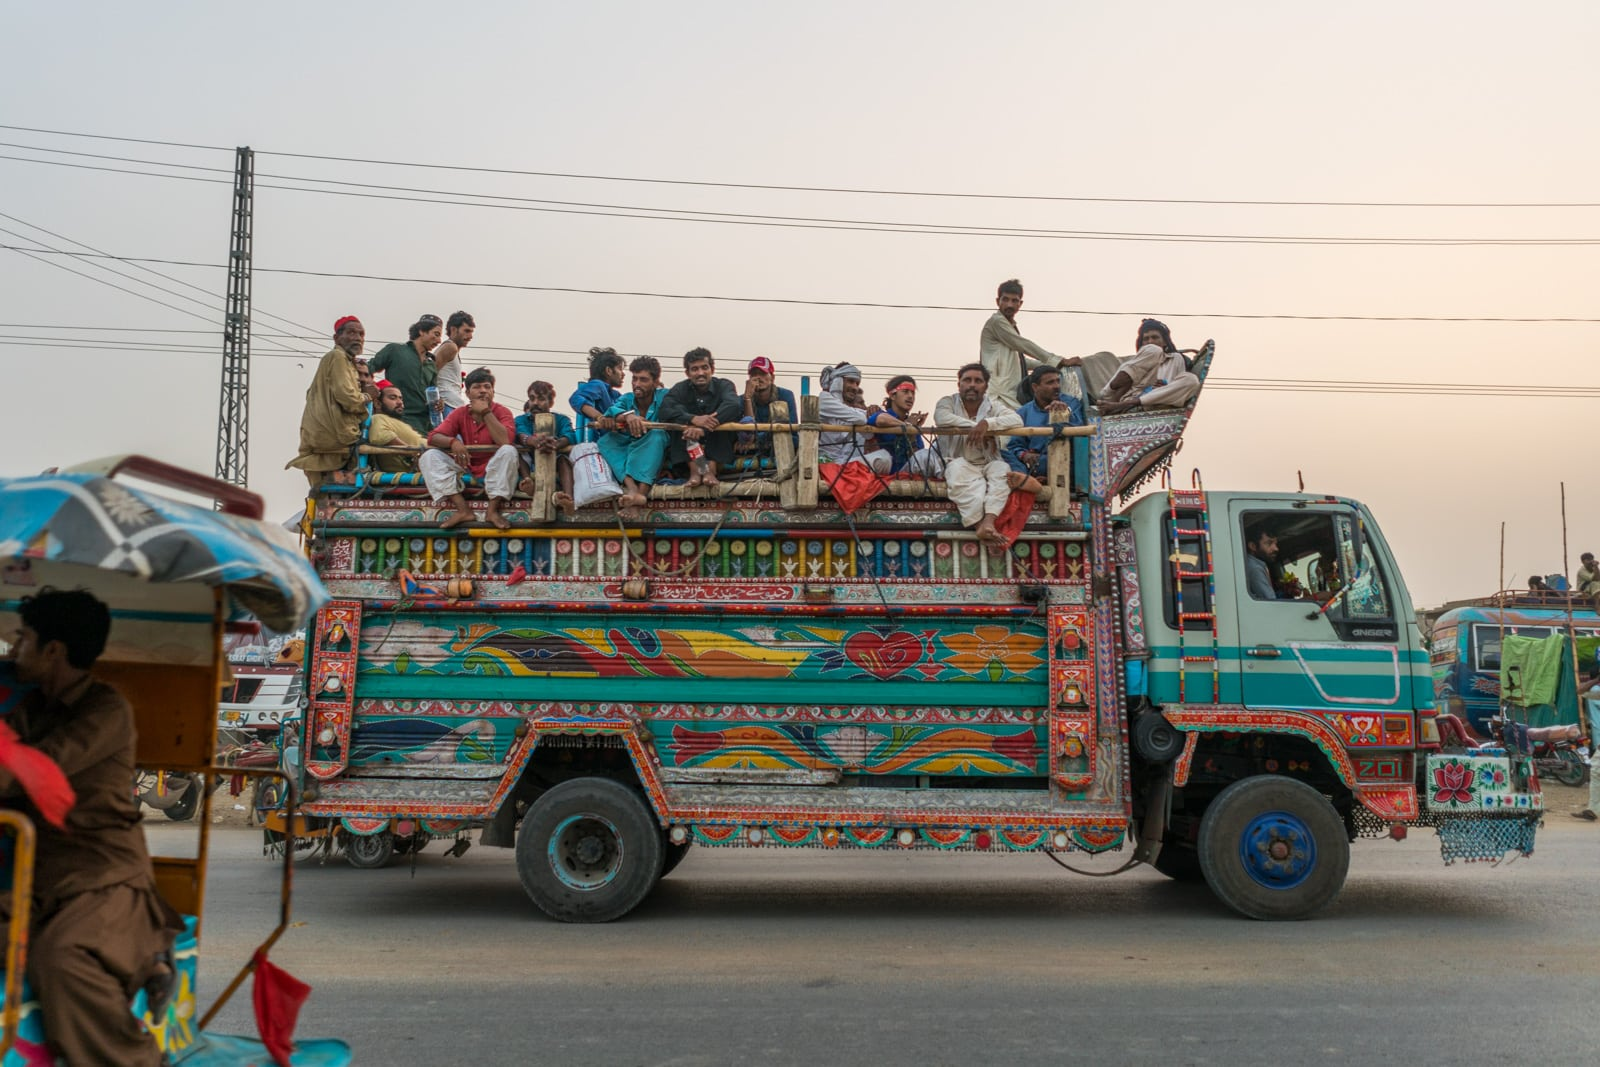 The Urs of Lal Shahbaz Qalandar in Sehwan, Pakistan - Colorful Pakistani truck full of men - Lost With Purpose travel blog